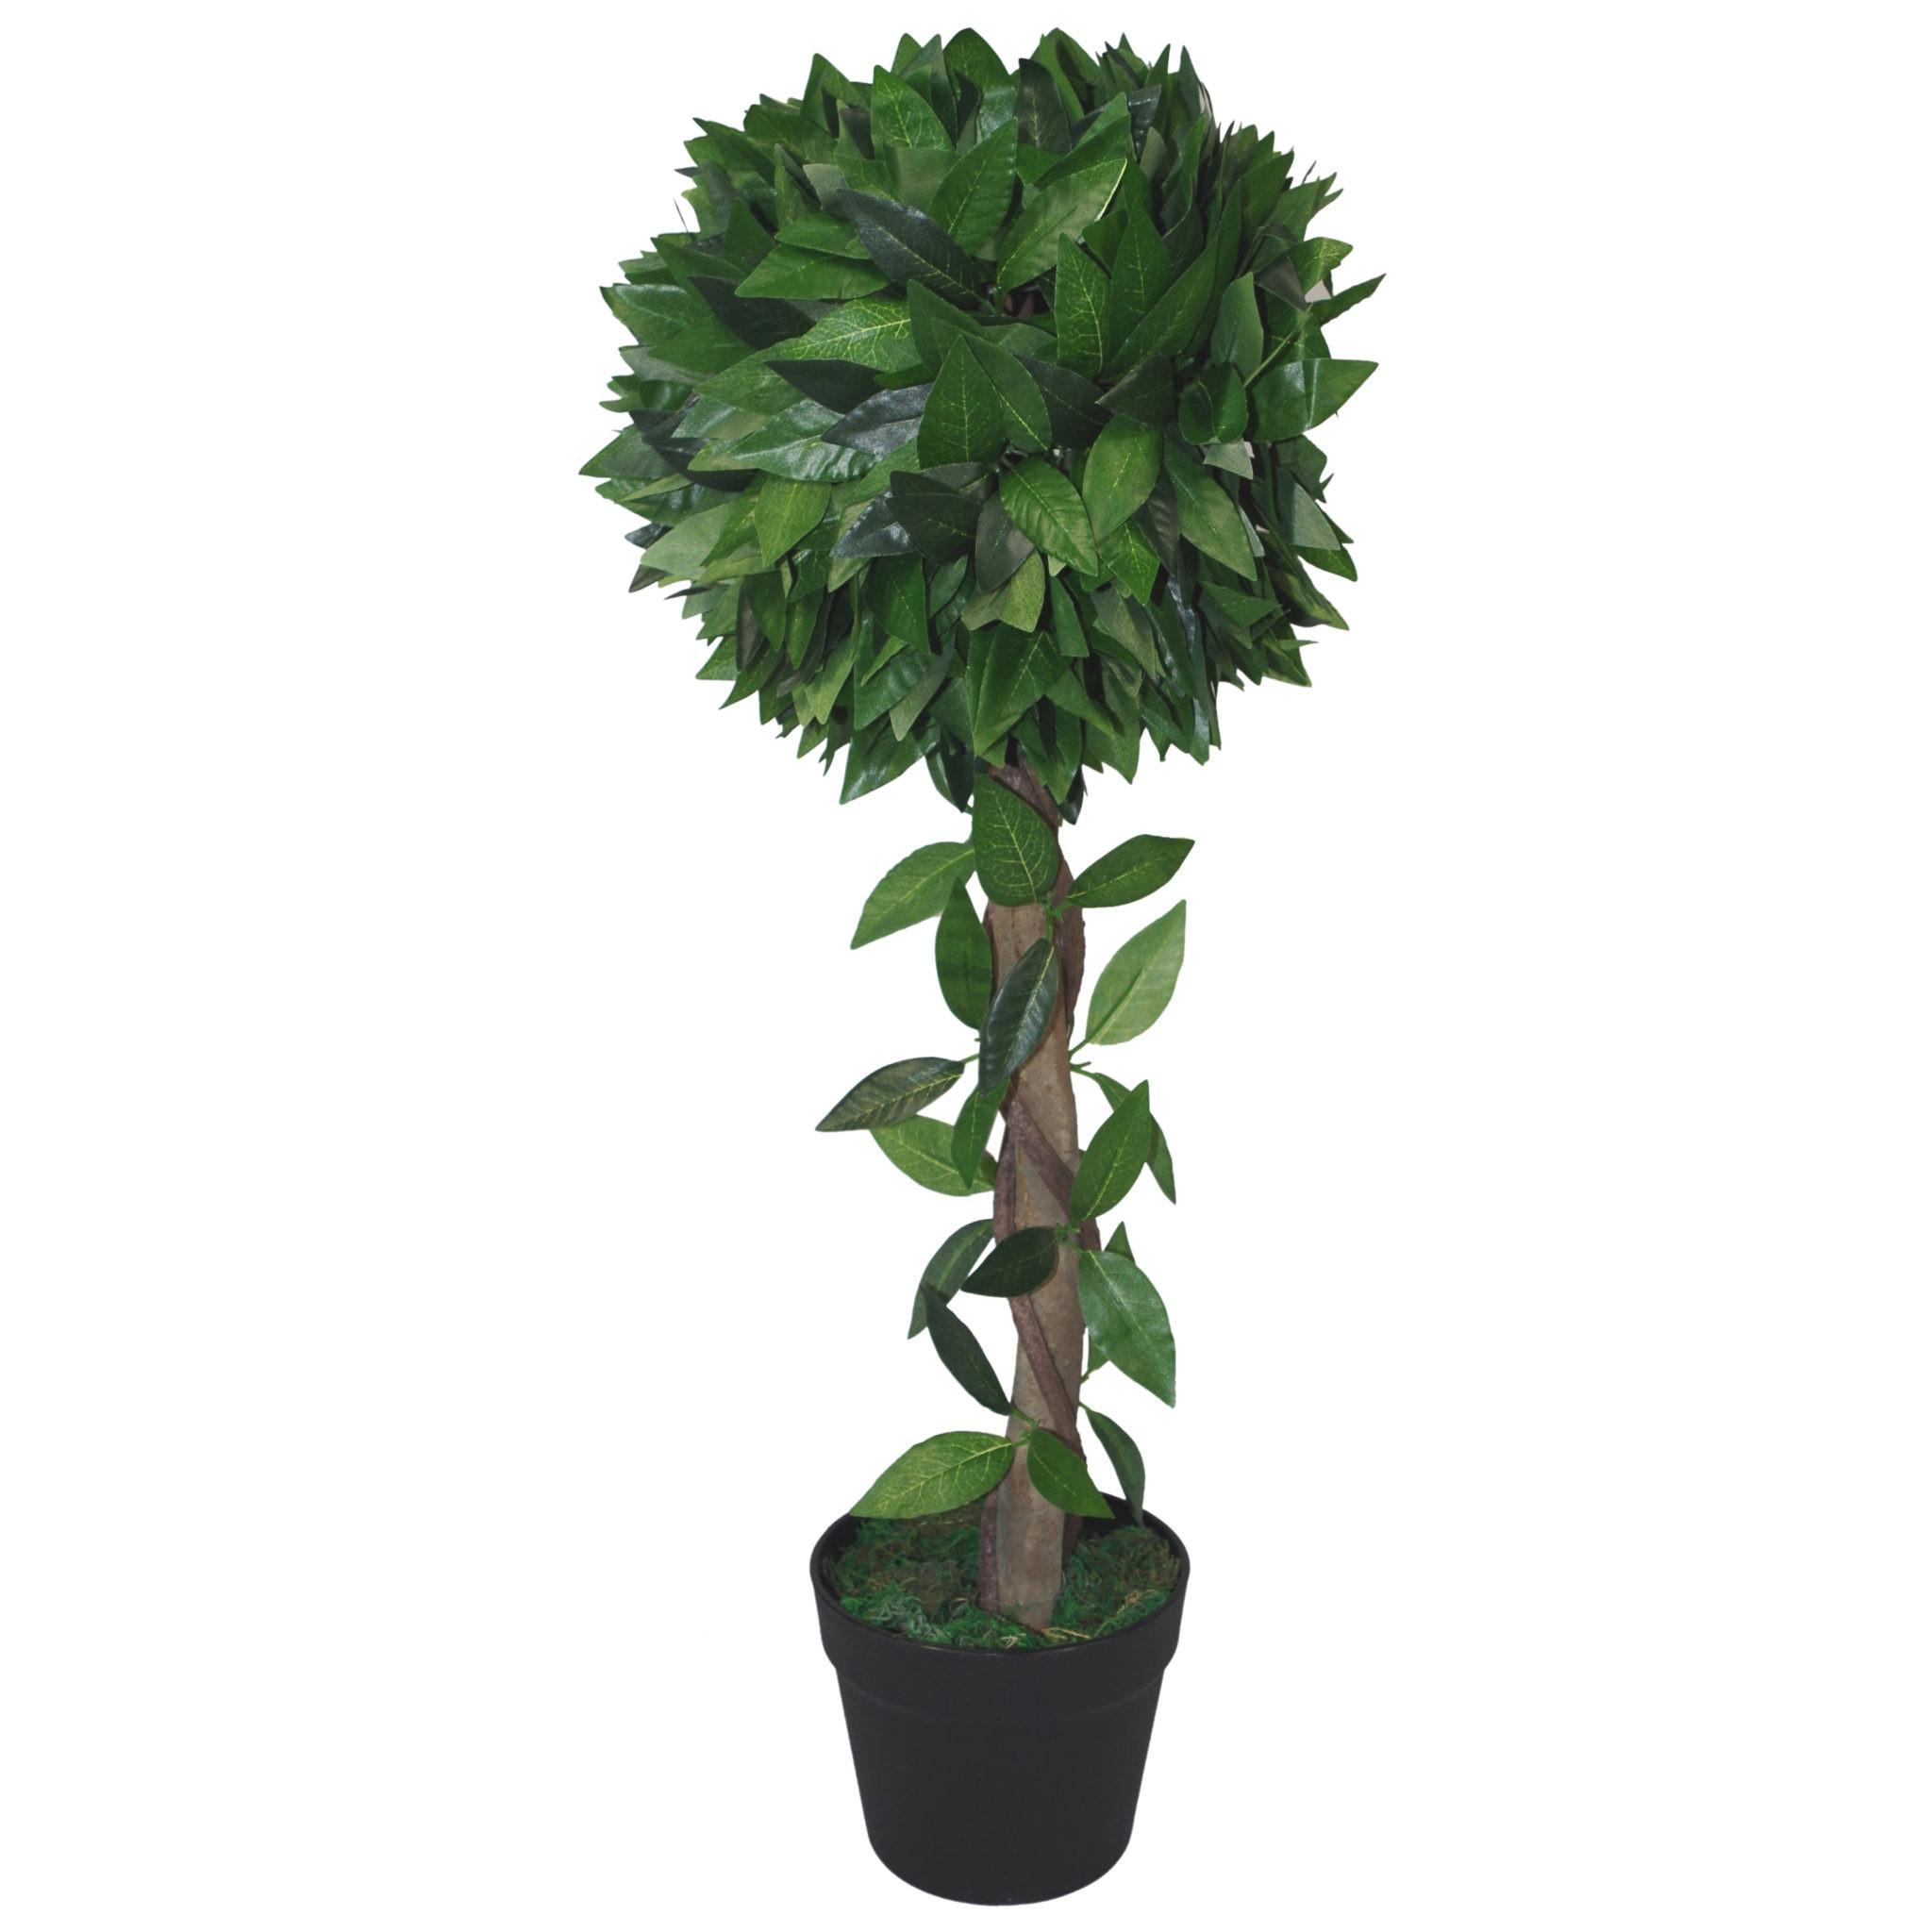 70cm Artificial Topiary Bay Tree Ball Style Large